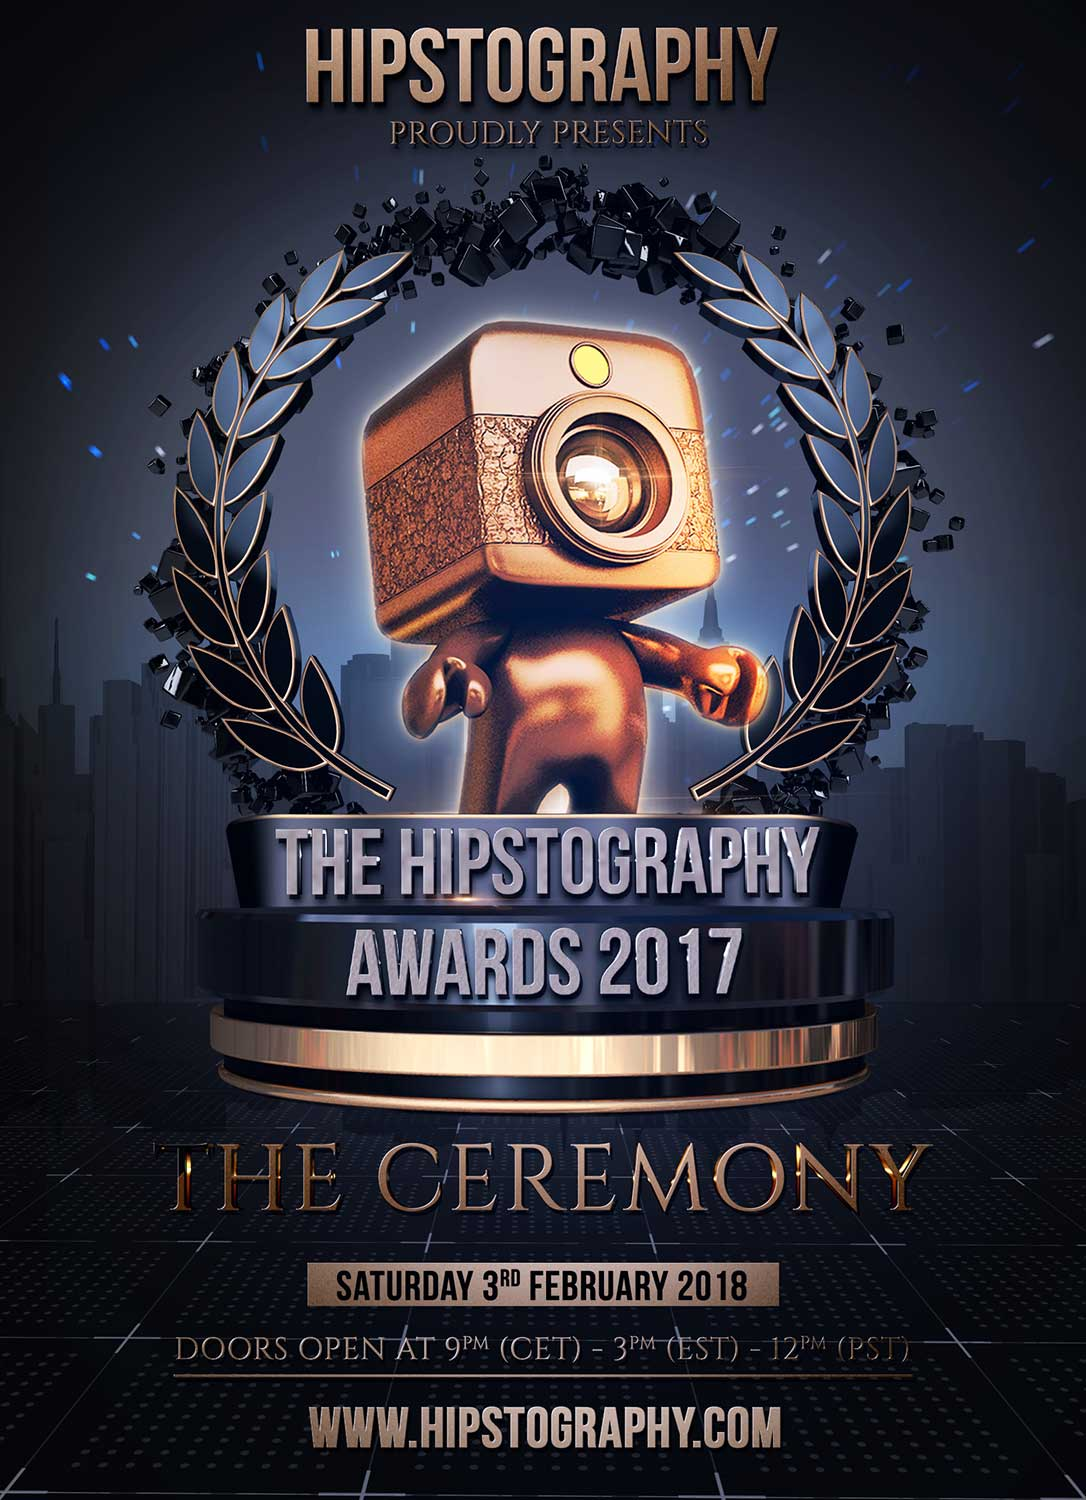 Awards-2017-Ceremony-Affiche-2017